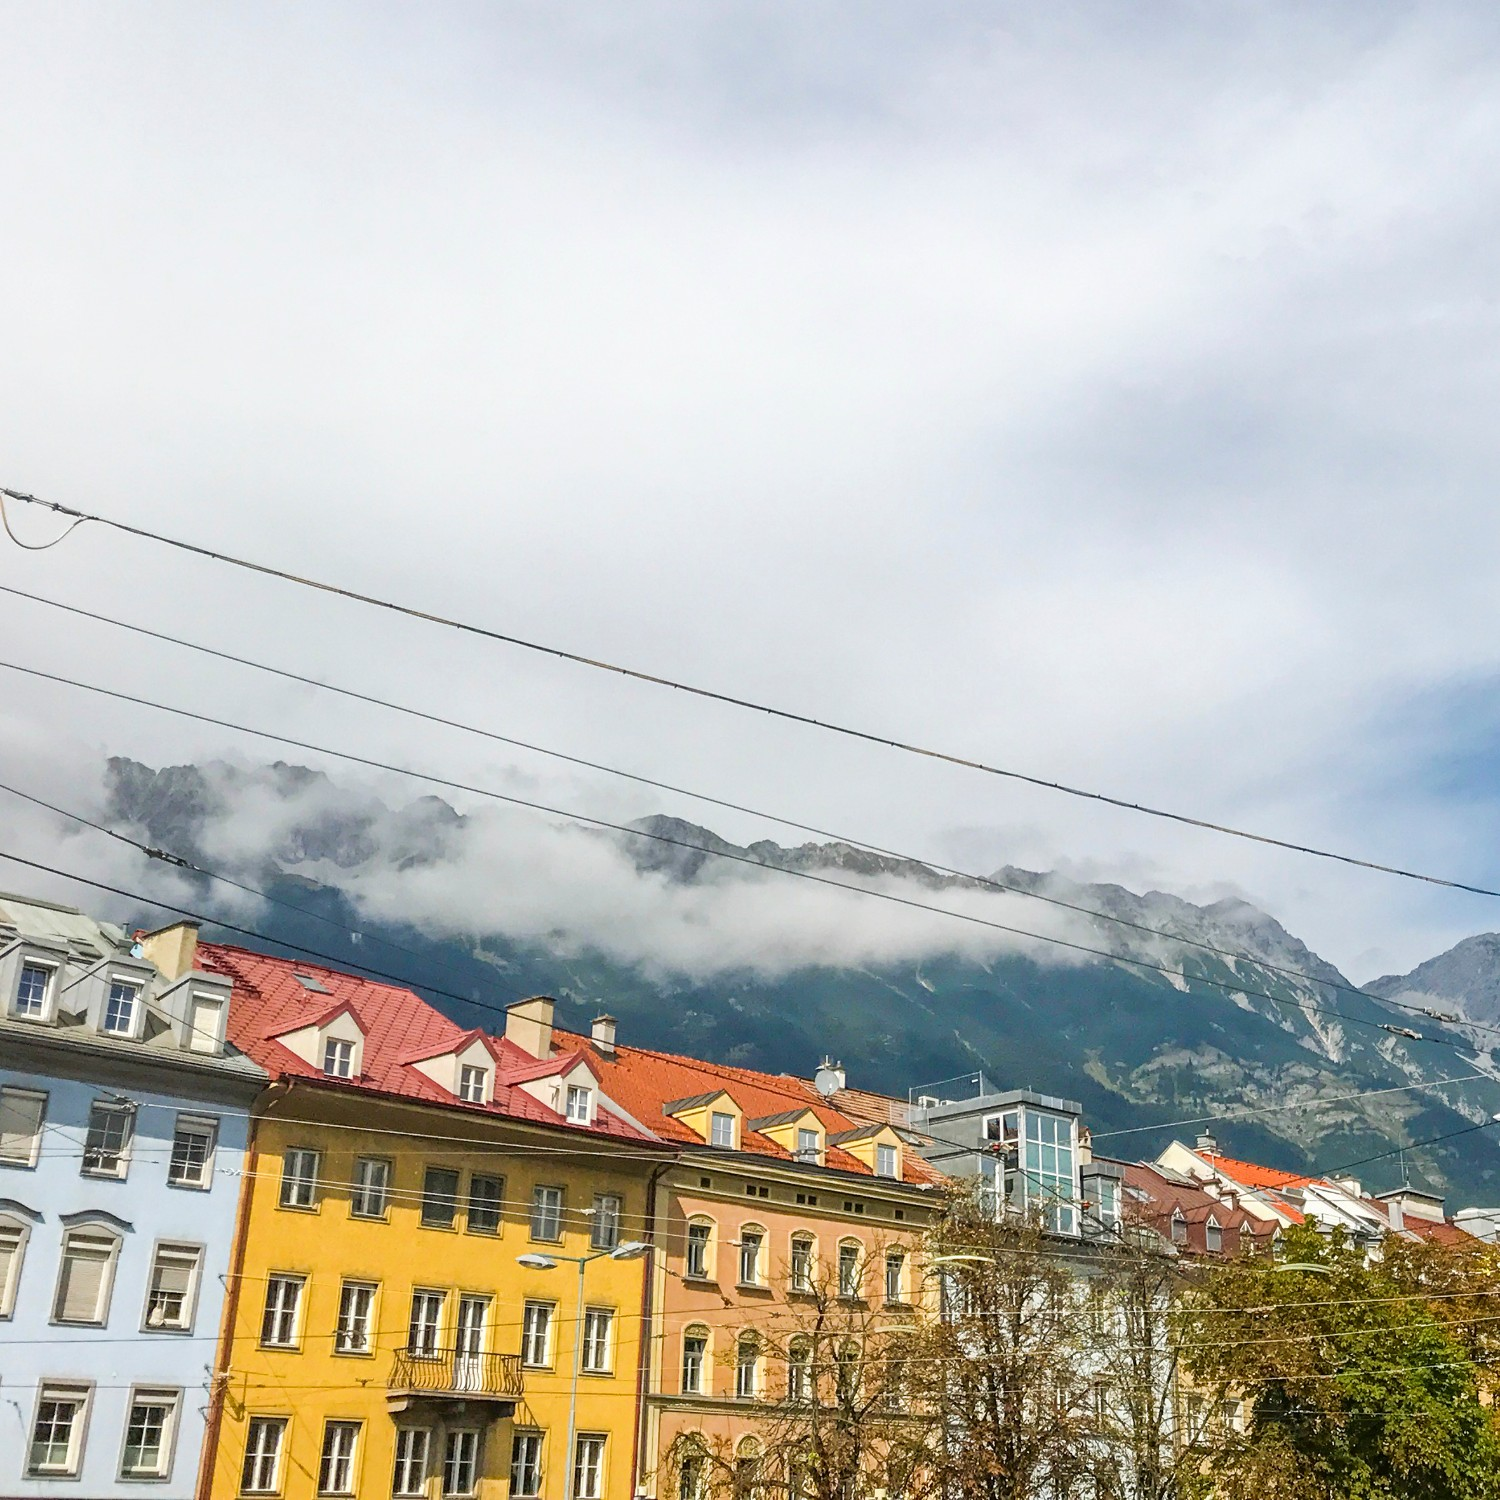 cloudy skies over the mountains of Innsbruck